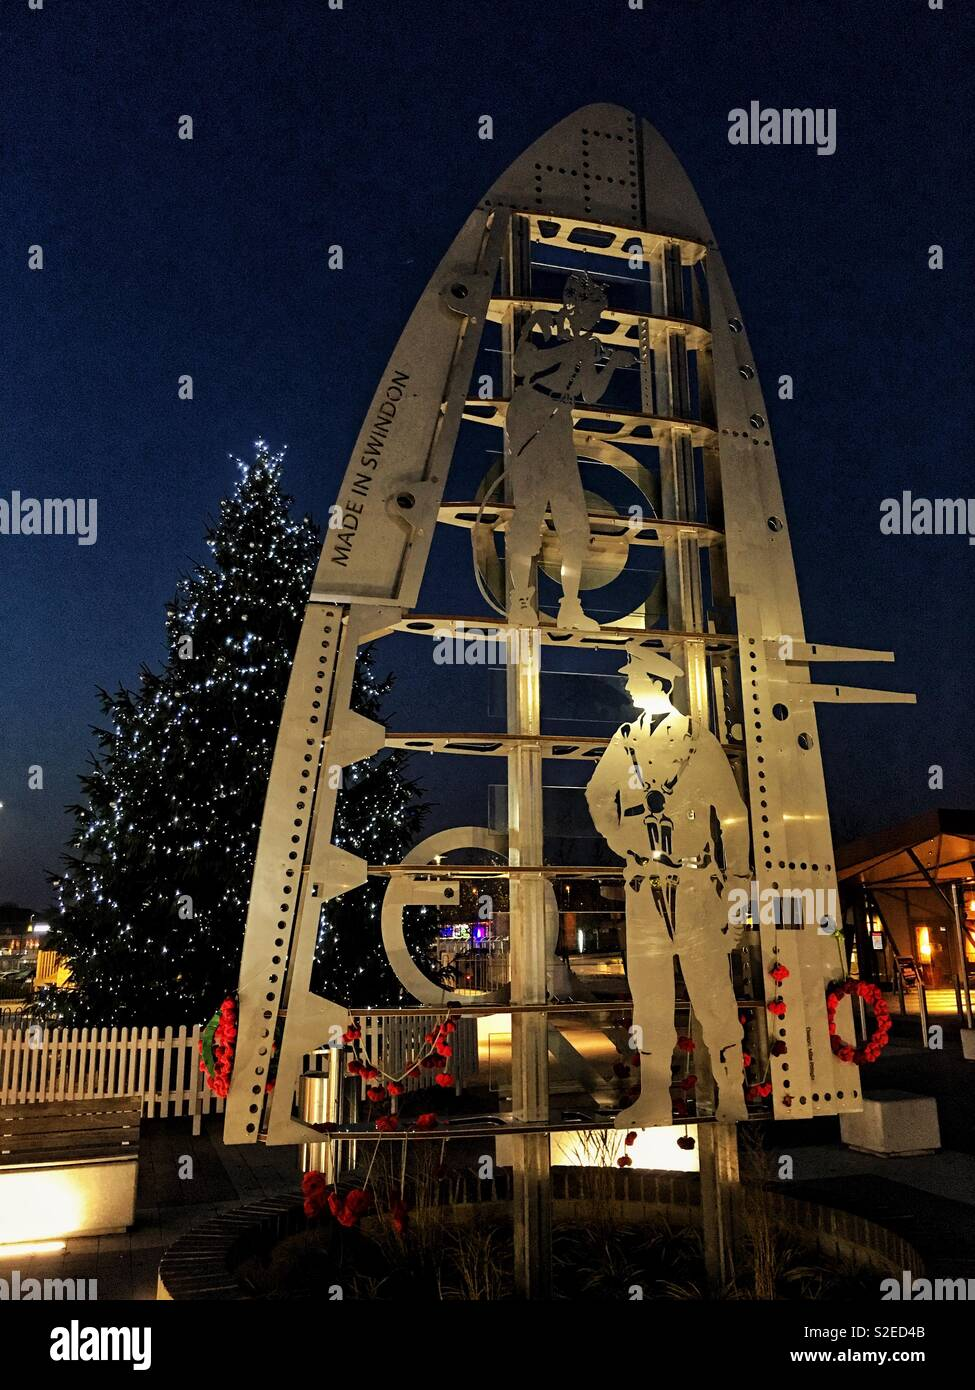 Swindon monument with poppies and Christmas tree - Stock Image